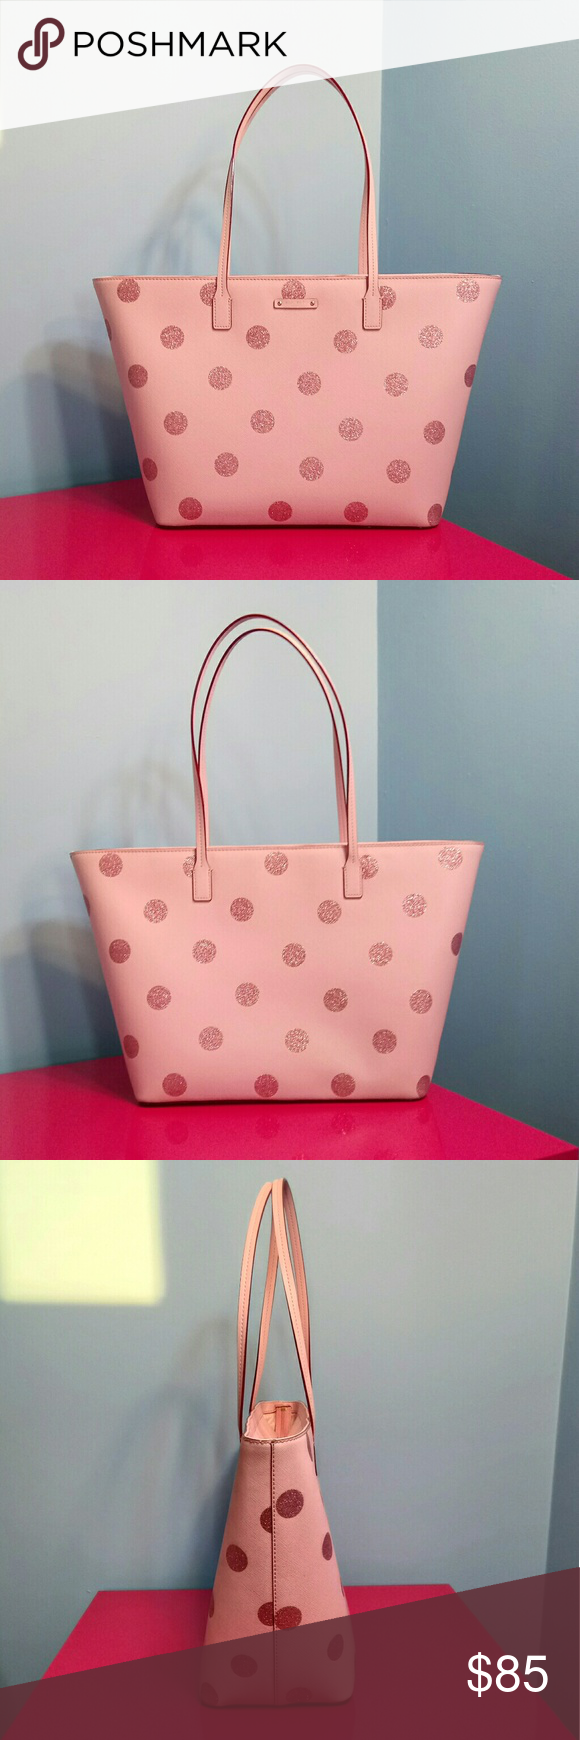 Kate Spade Haven Lane Margareta Pink Polka Dots This bag is pre-owned. Good conditions. Saffiano textured pvc, glittered polka dots. So lovely and roomy bag! Kate Spade  Bags Totes